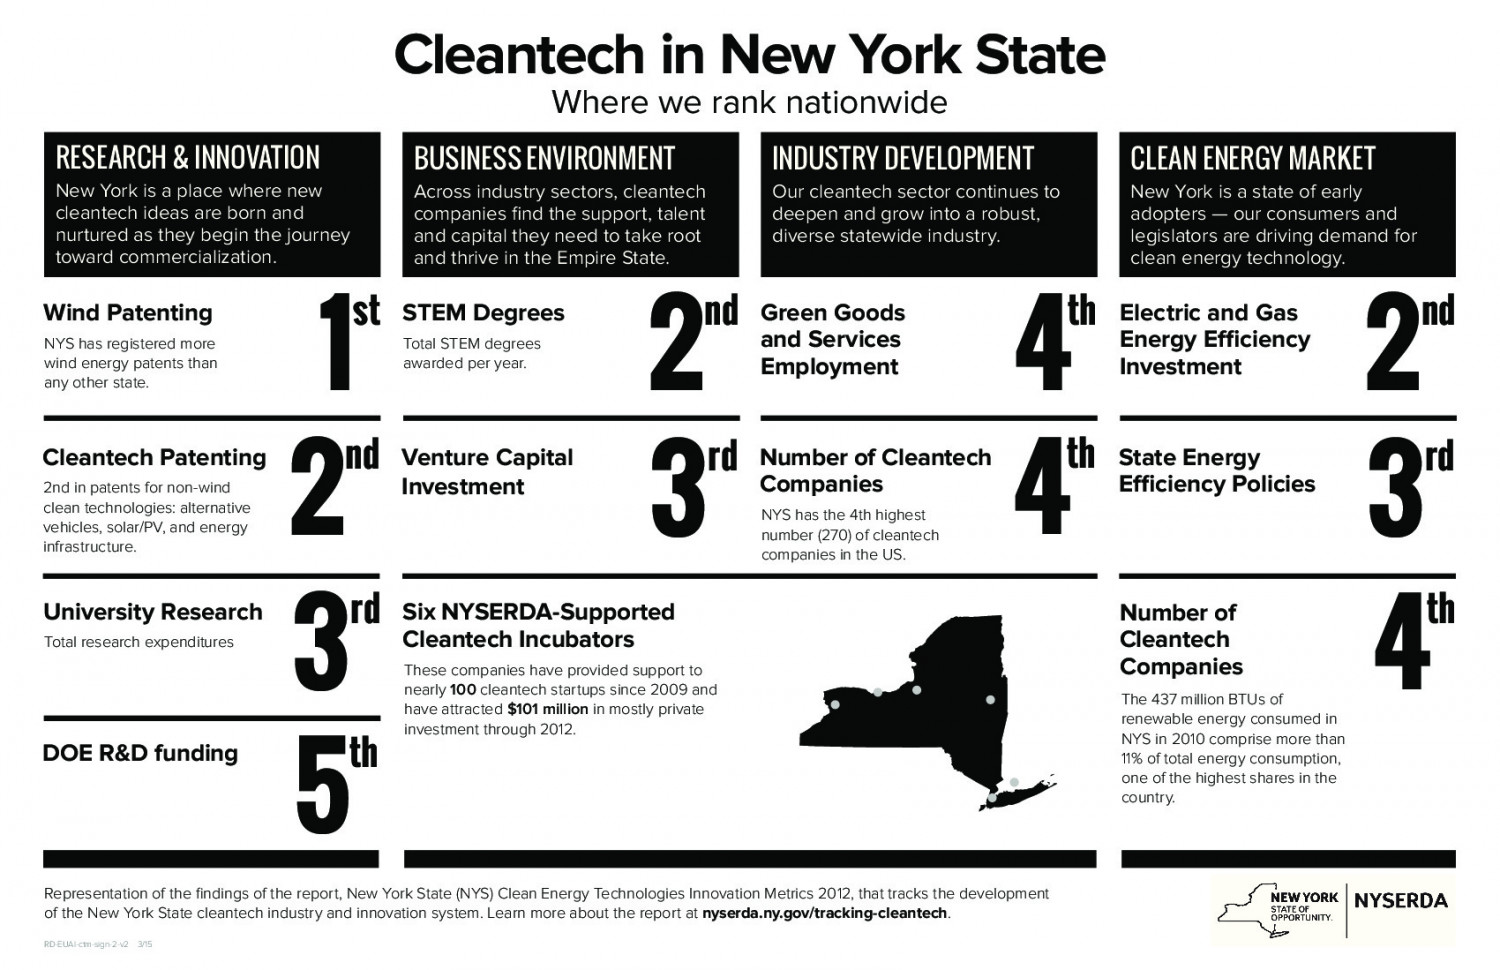 Cleantech in New York State Infographic